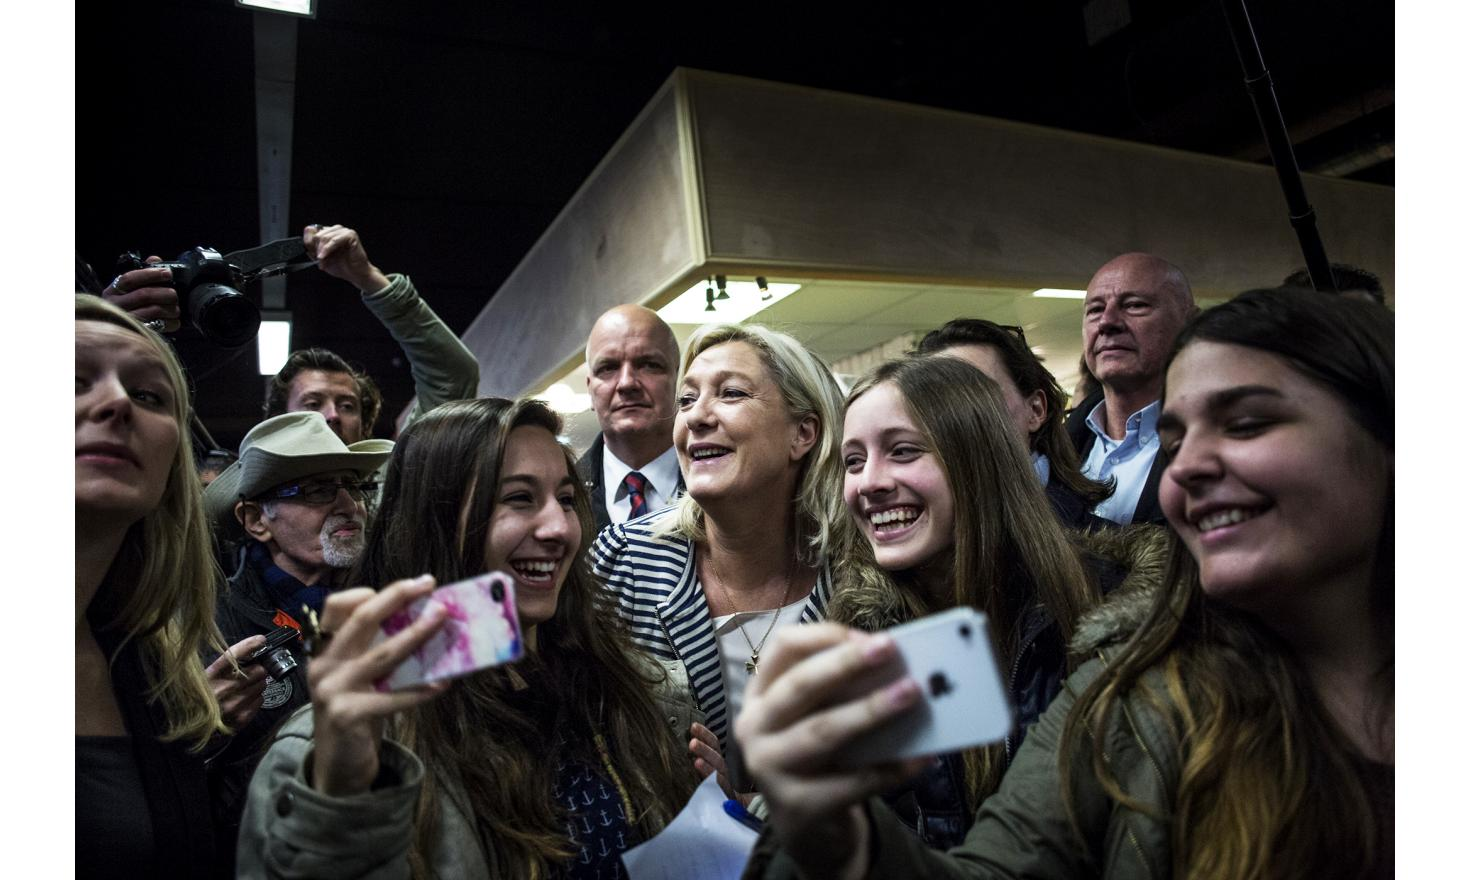 Marine Le Pen. Meeting in Avignon and Pontet. Departmental elections, March 2015.